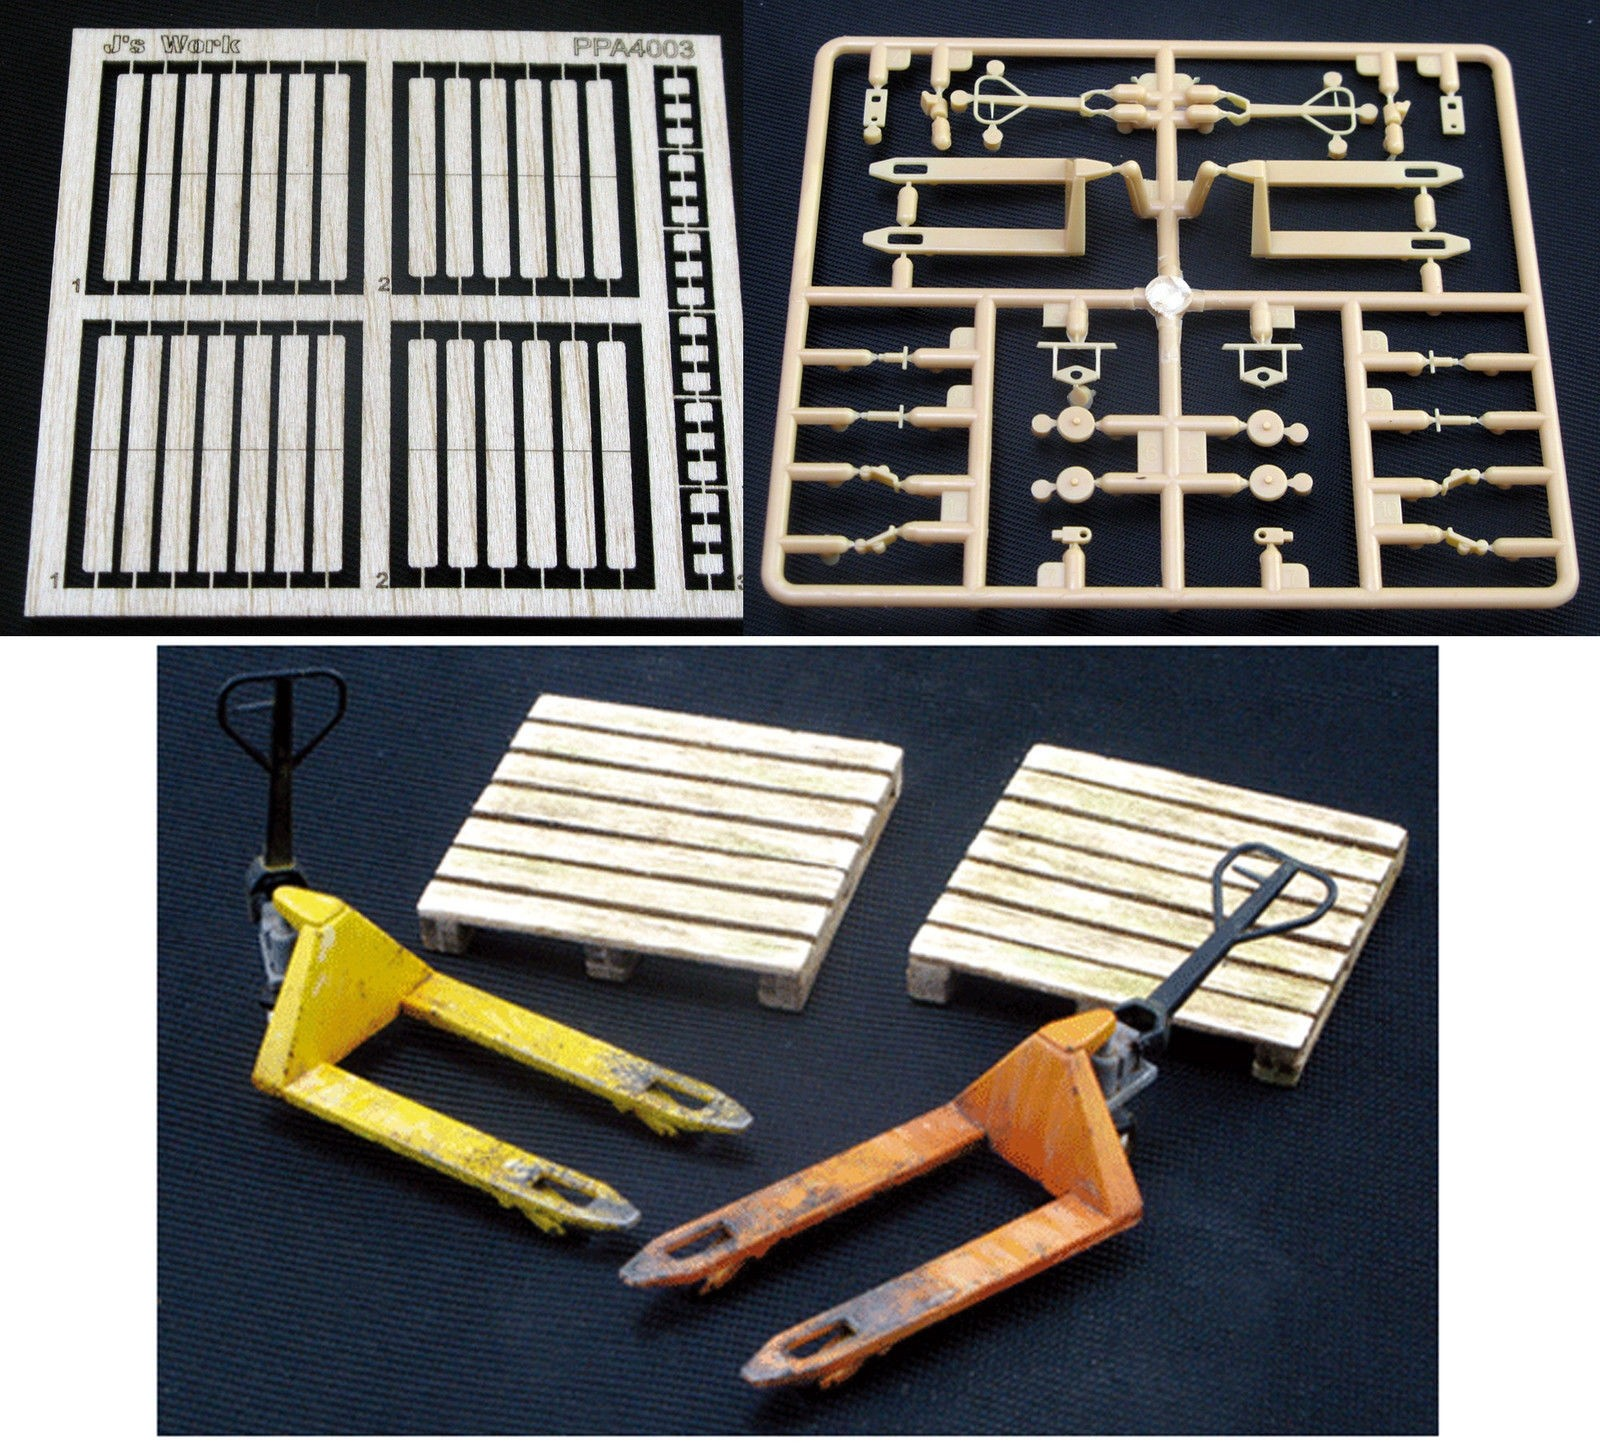 Pallet Truck with Wooden Pallet (2 sets)